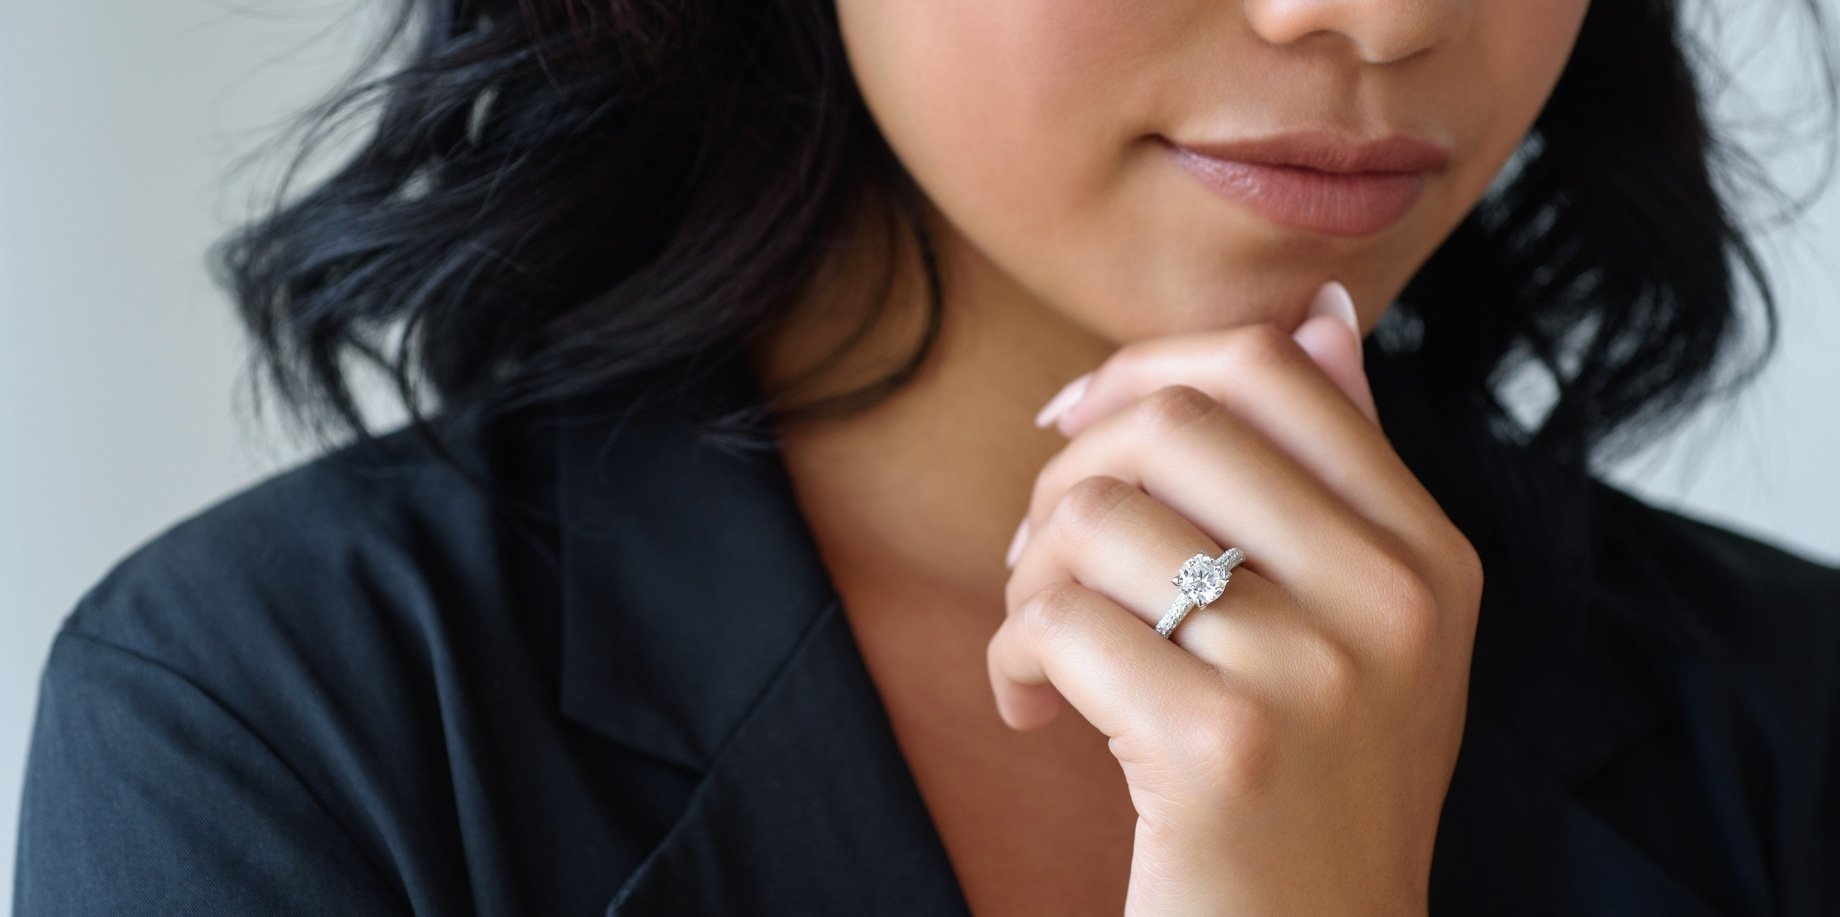 Why Lab-Grown Diamonds Could Soon Become the Most Popular Choice for Engagement Rings